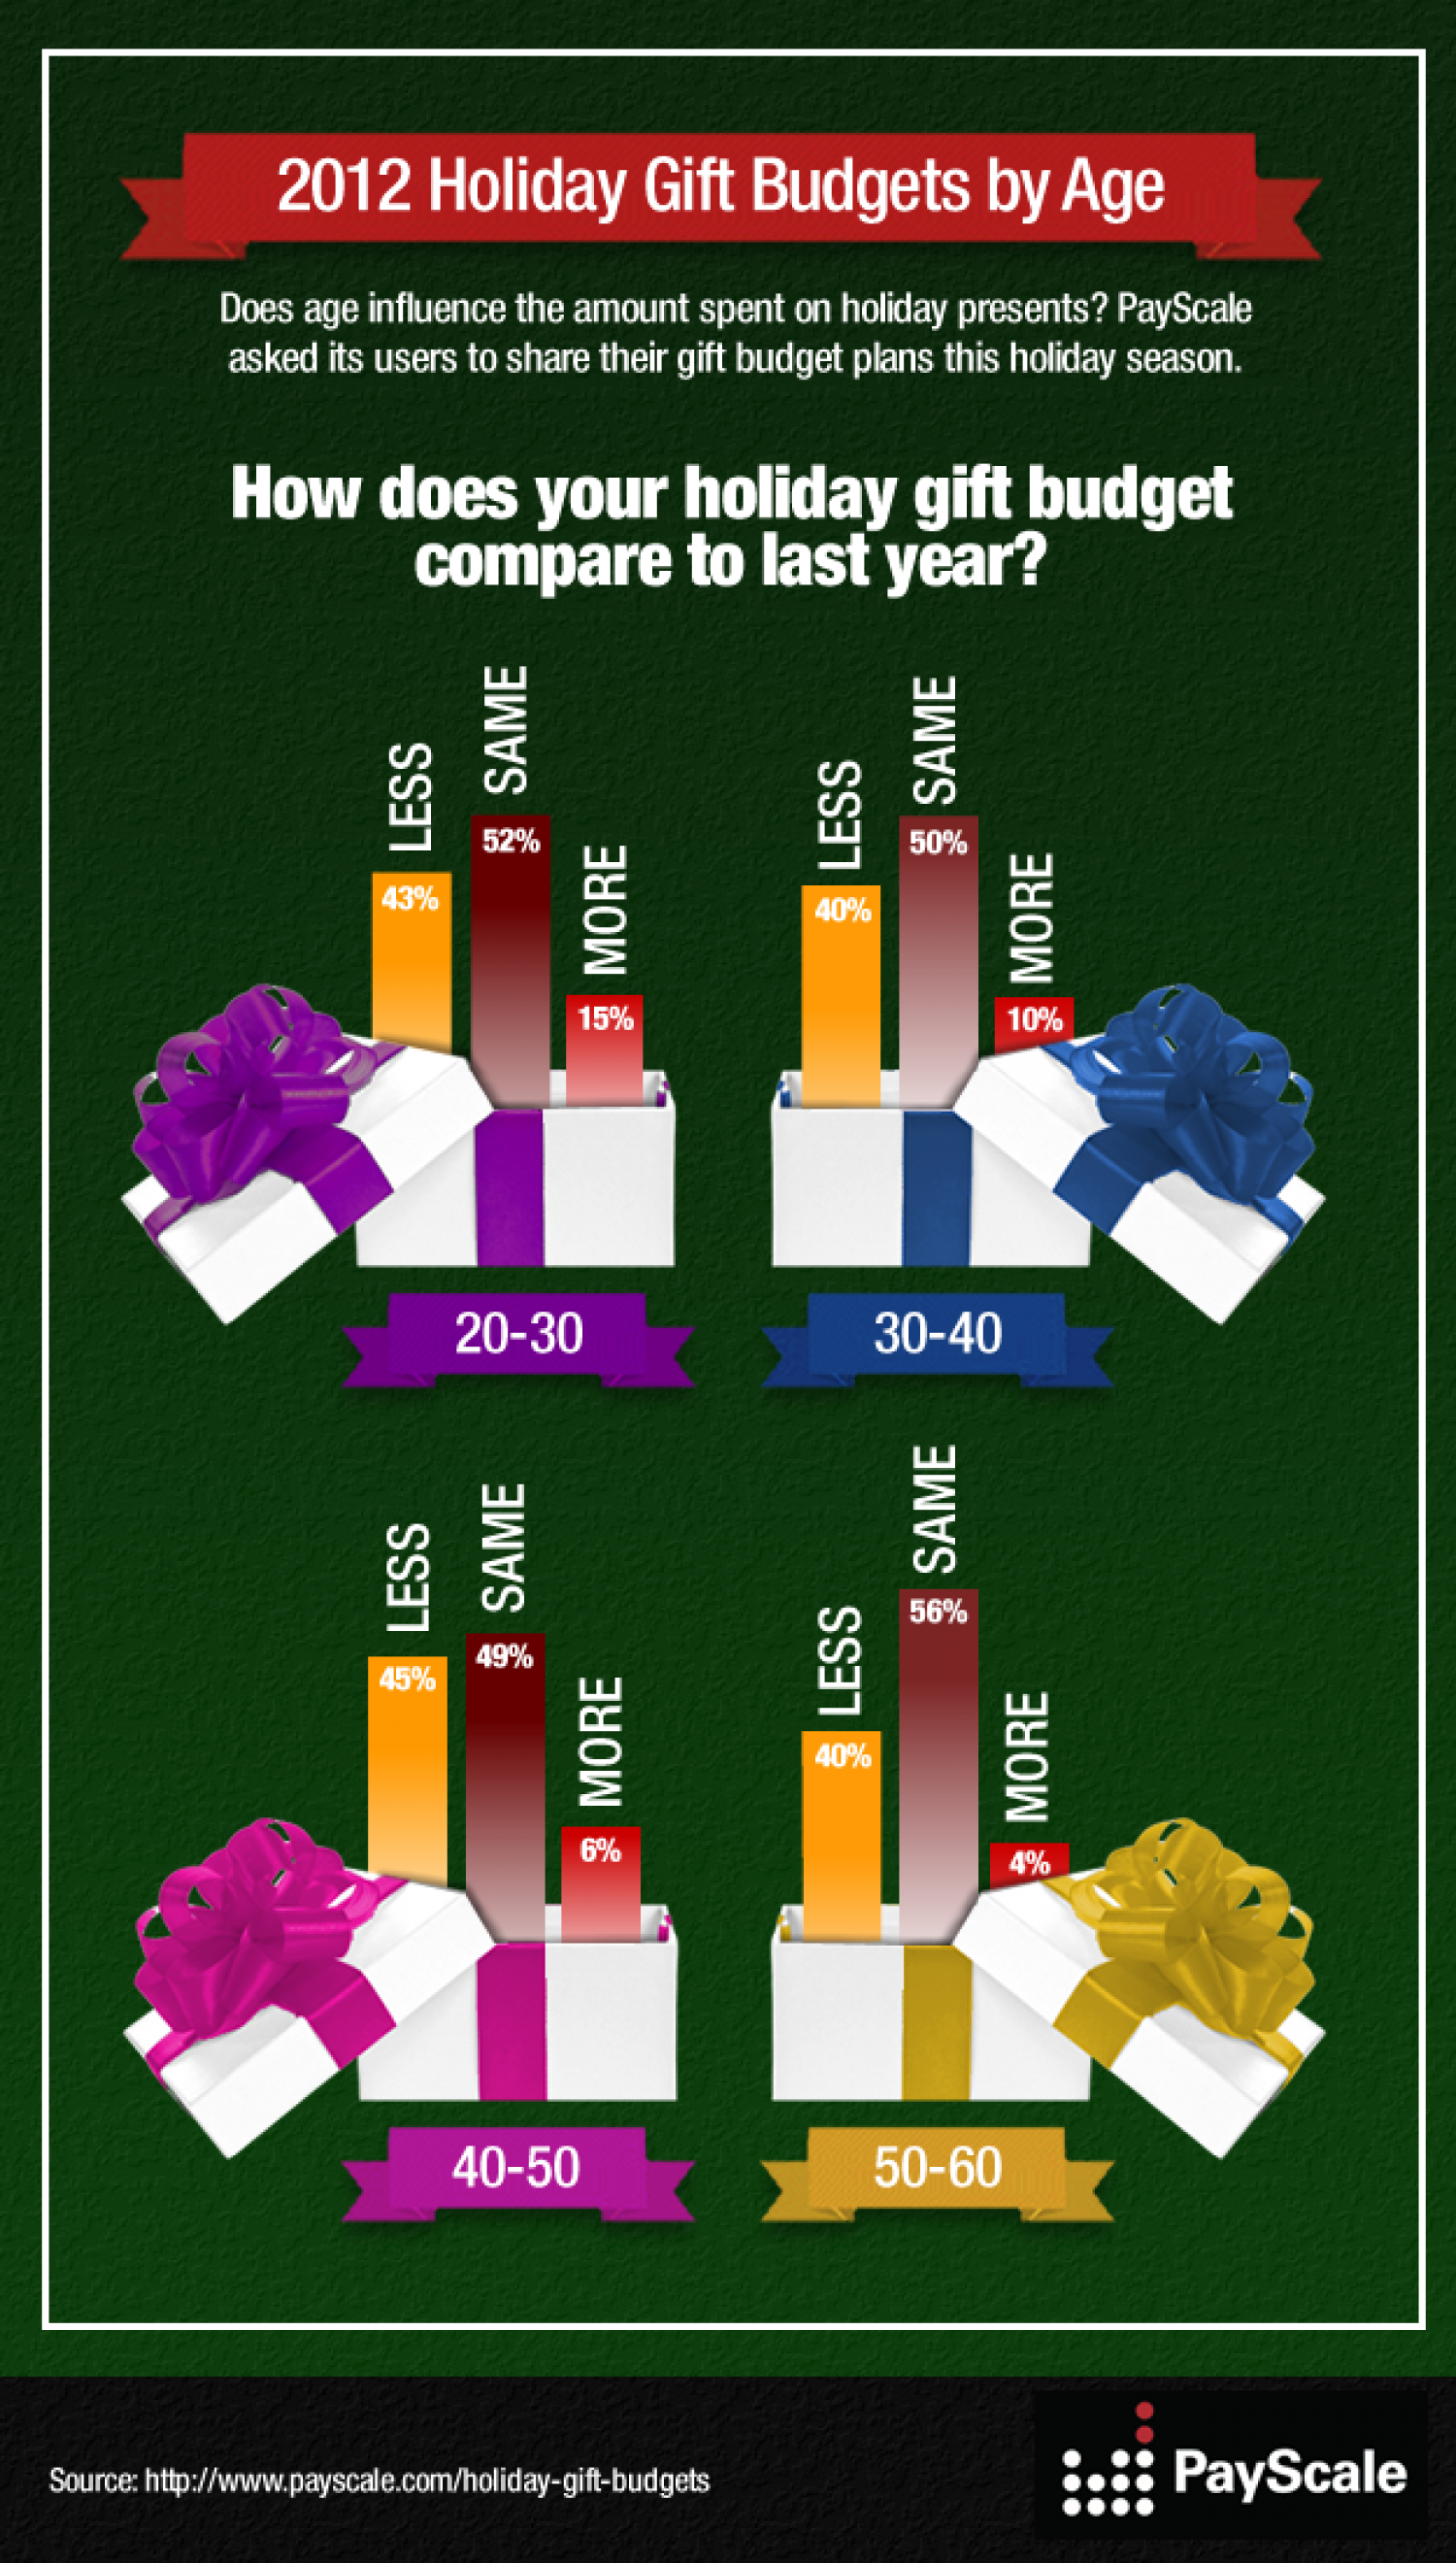 2012 Holiday Gift Budgets by Age Infographic